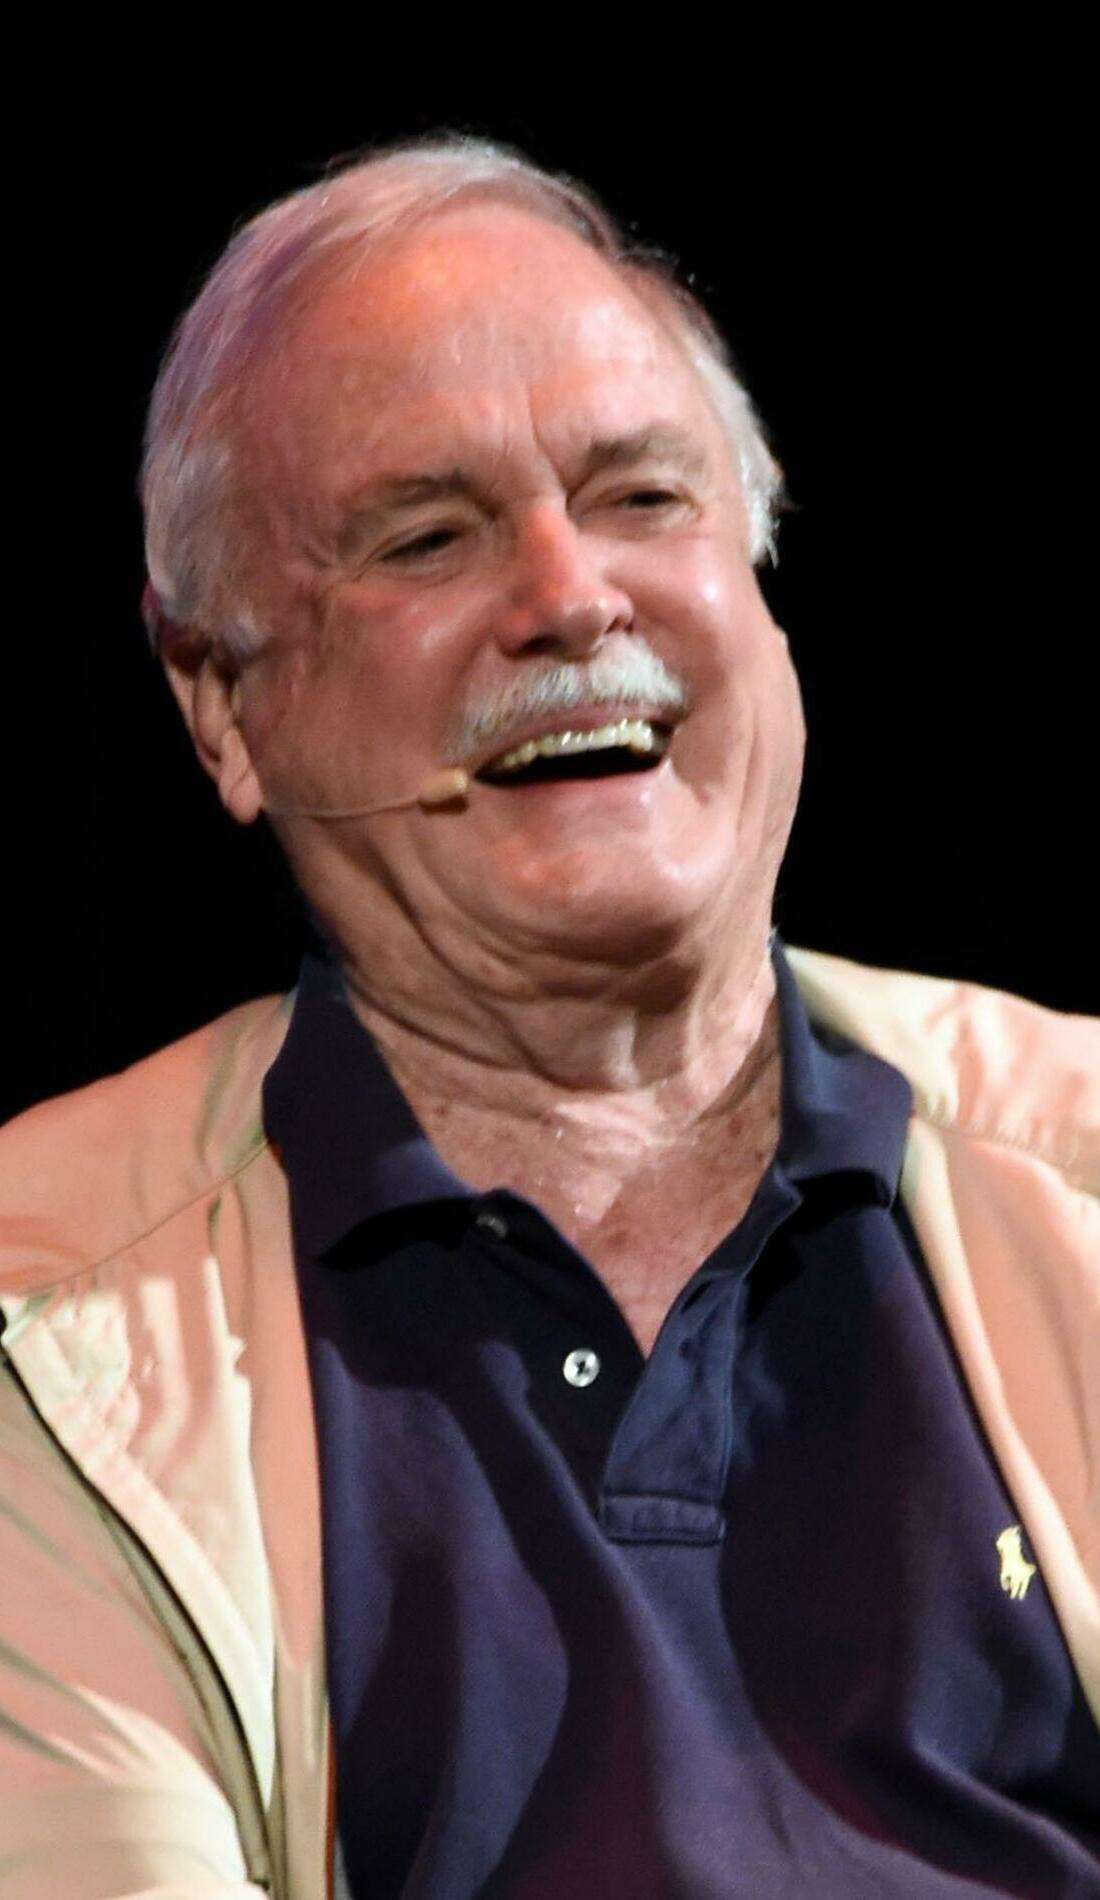 A John Cleese live event